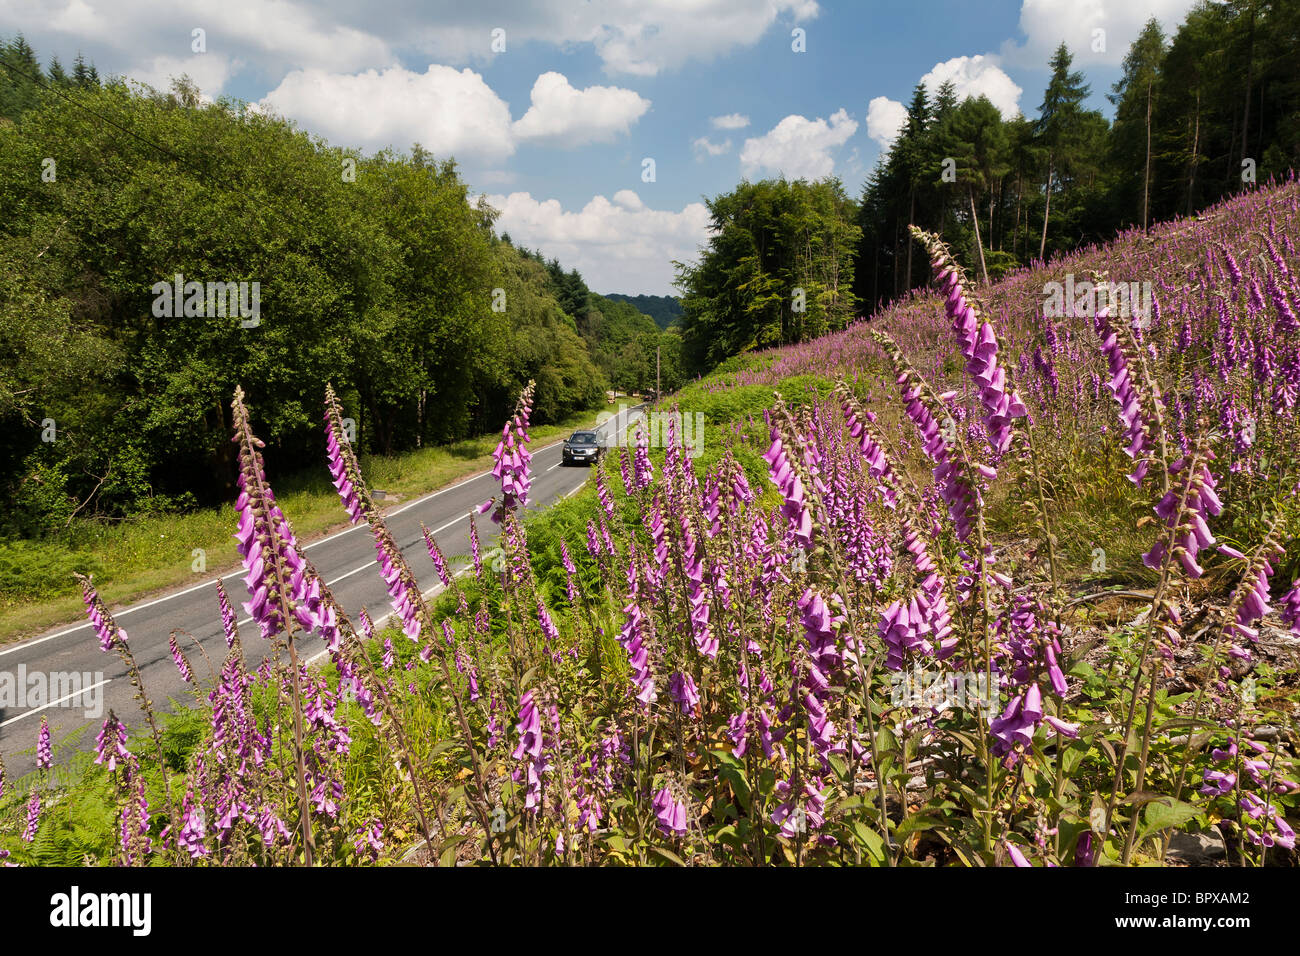 CAR ON ROAD IN FOREST OF DEAN WITH FOXGLOVES IN FOREGROUND Stock Photo